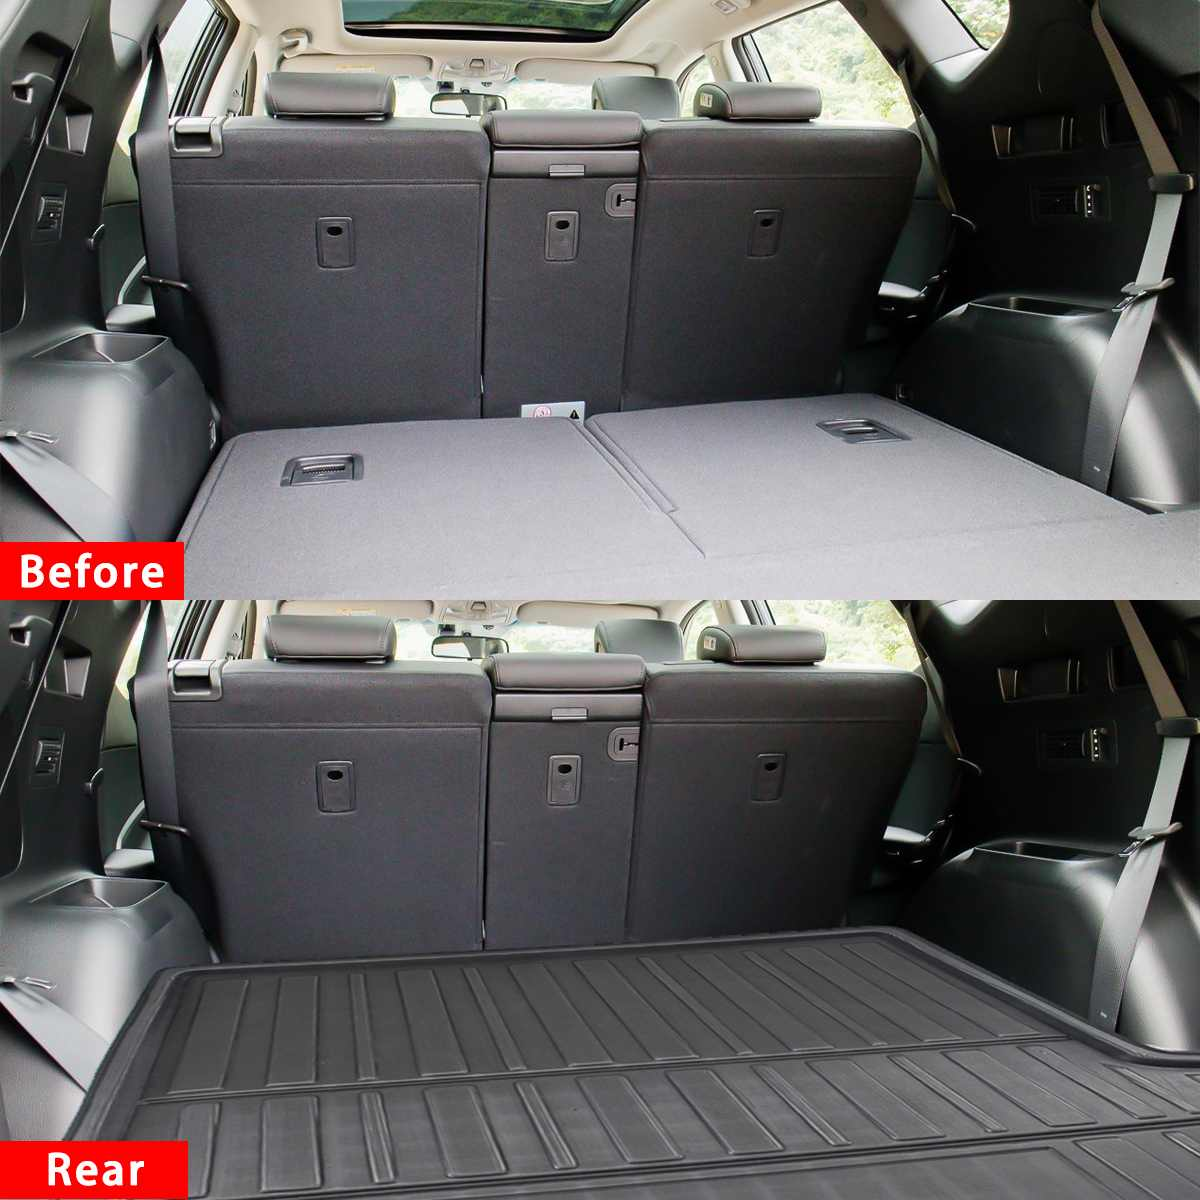 Floor-Carpet Hyundai Santa-Fe Trunk-Cover Matt-Mat Car-Tray Cargo Non-Slip for Mud Rear title=